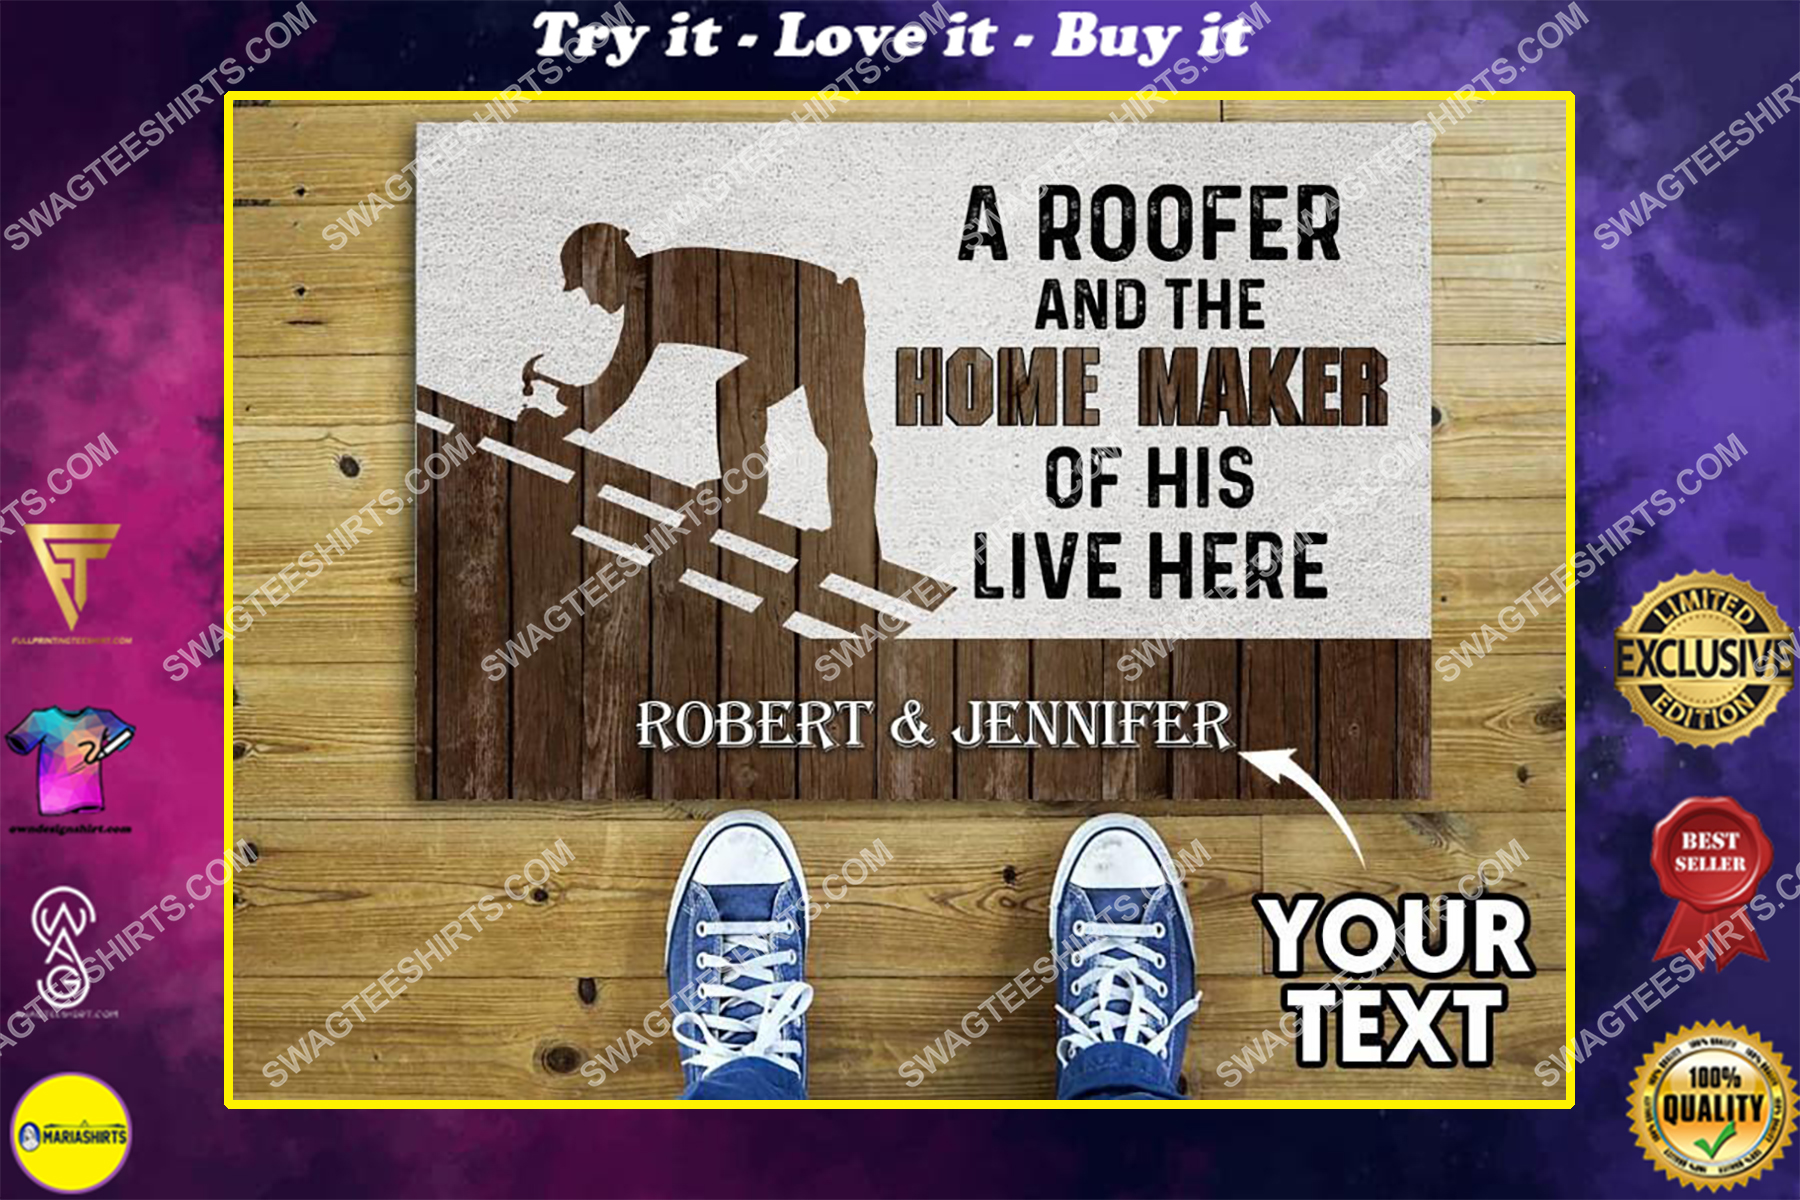 custom name a roofer and the home maker of his live here full print doormat